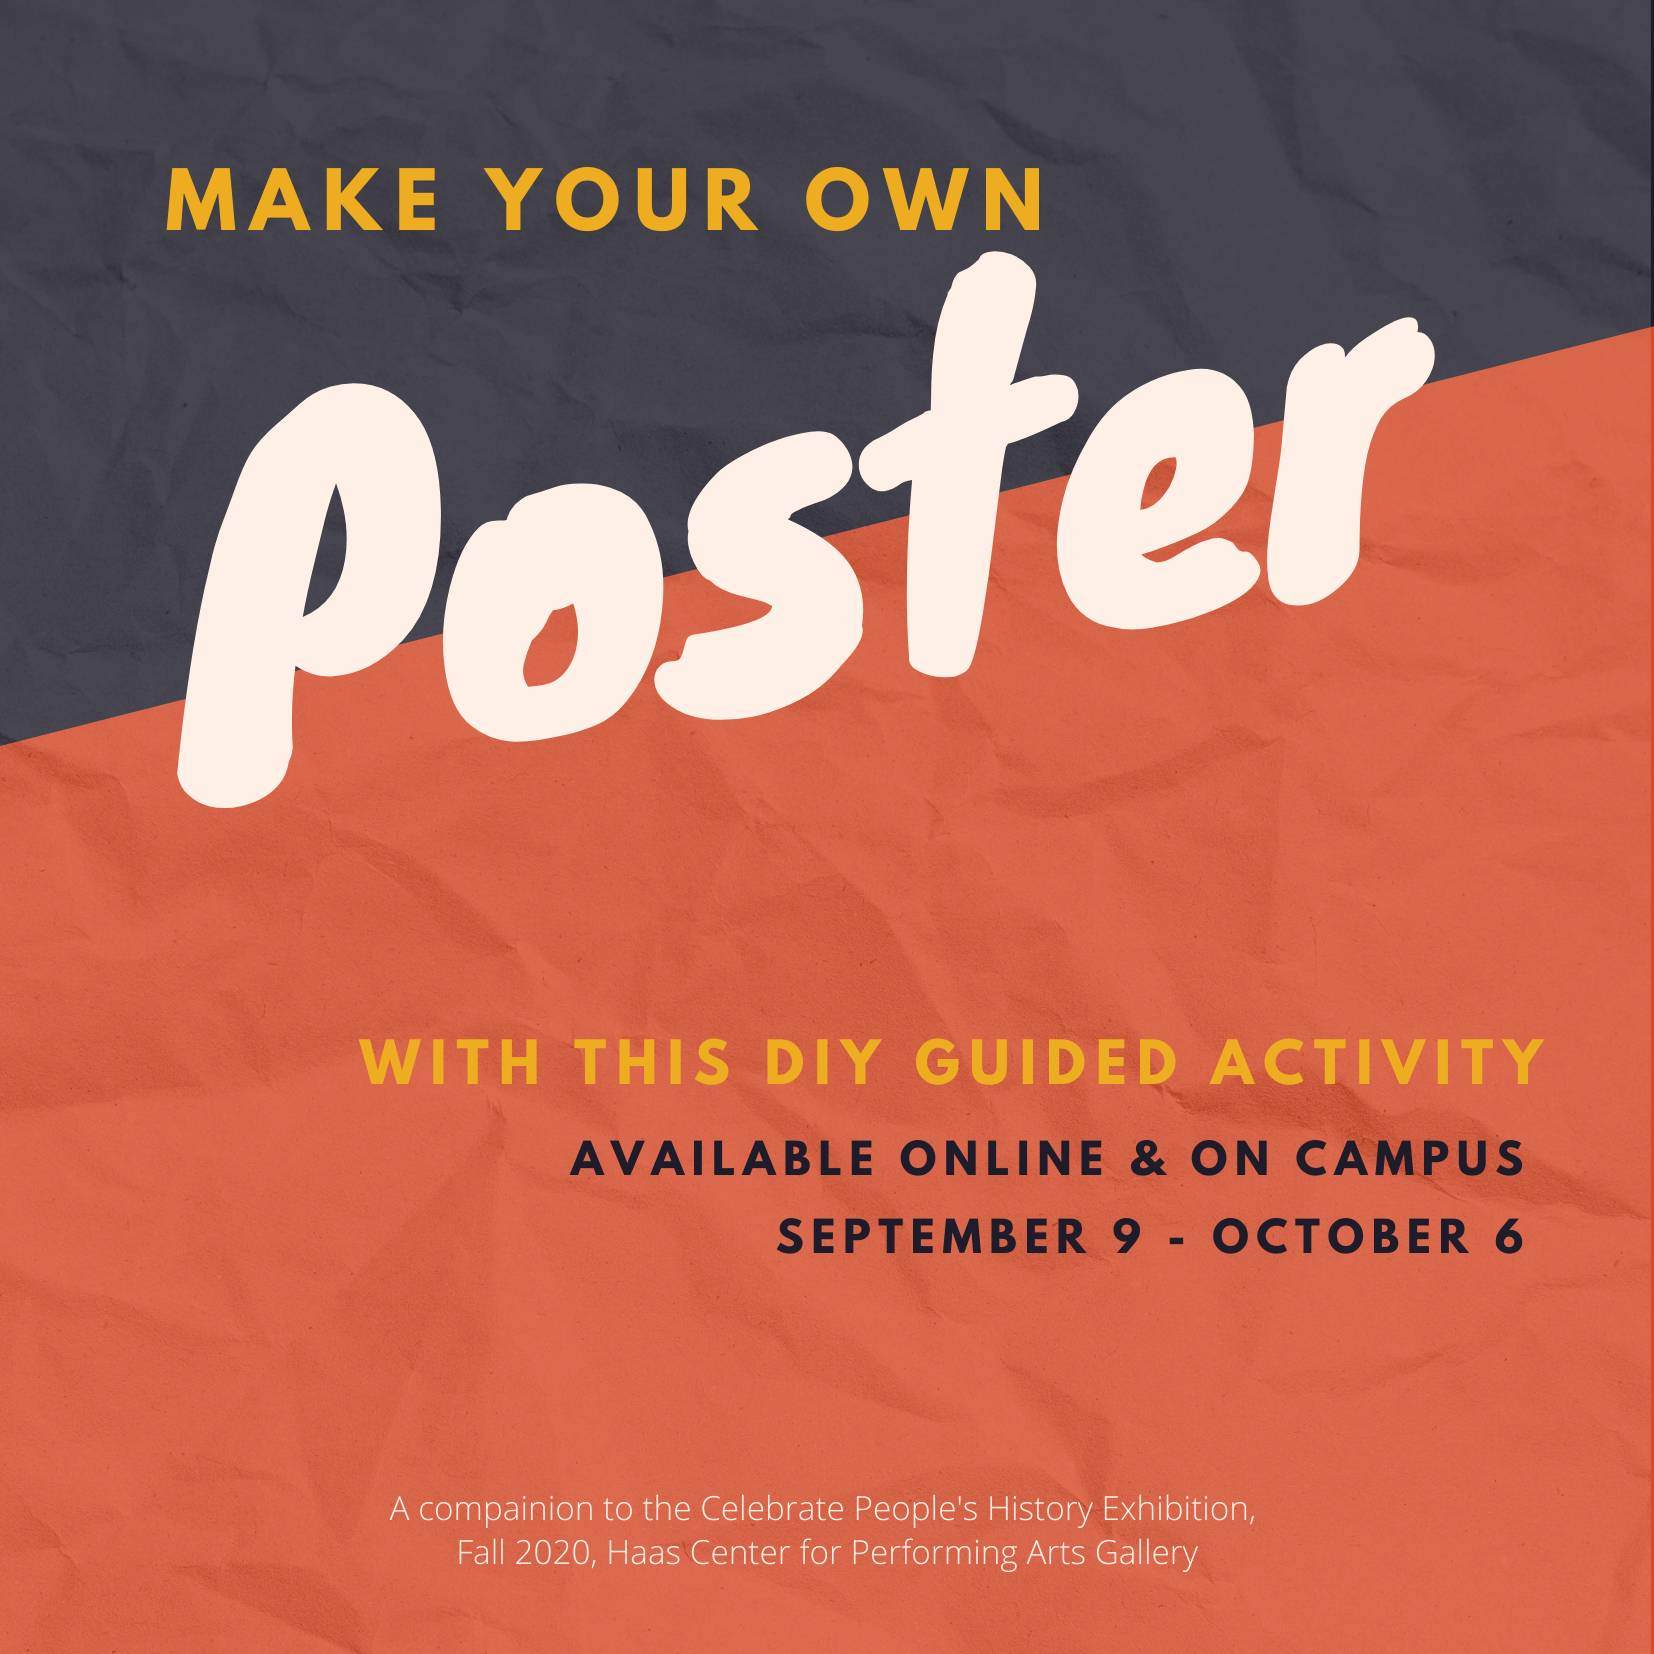 Make Your Own Poster with this guided DIY activity available online and on campus click to learn more